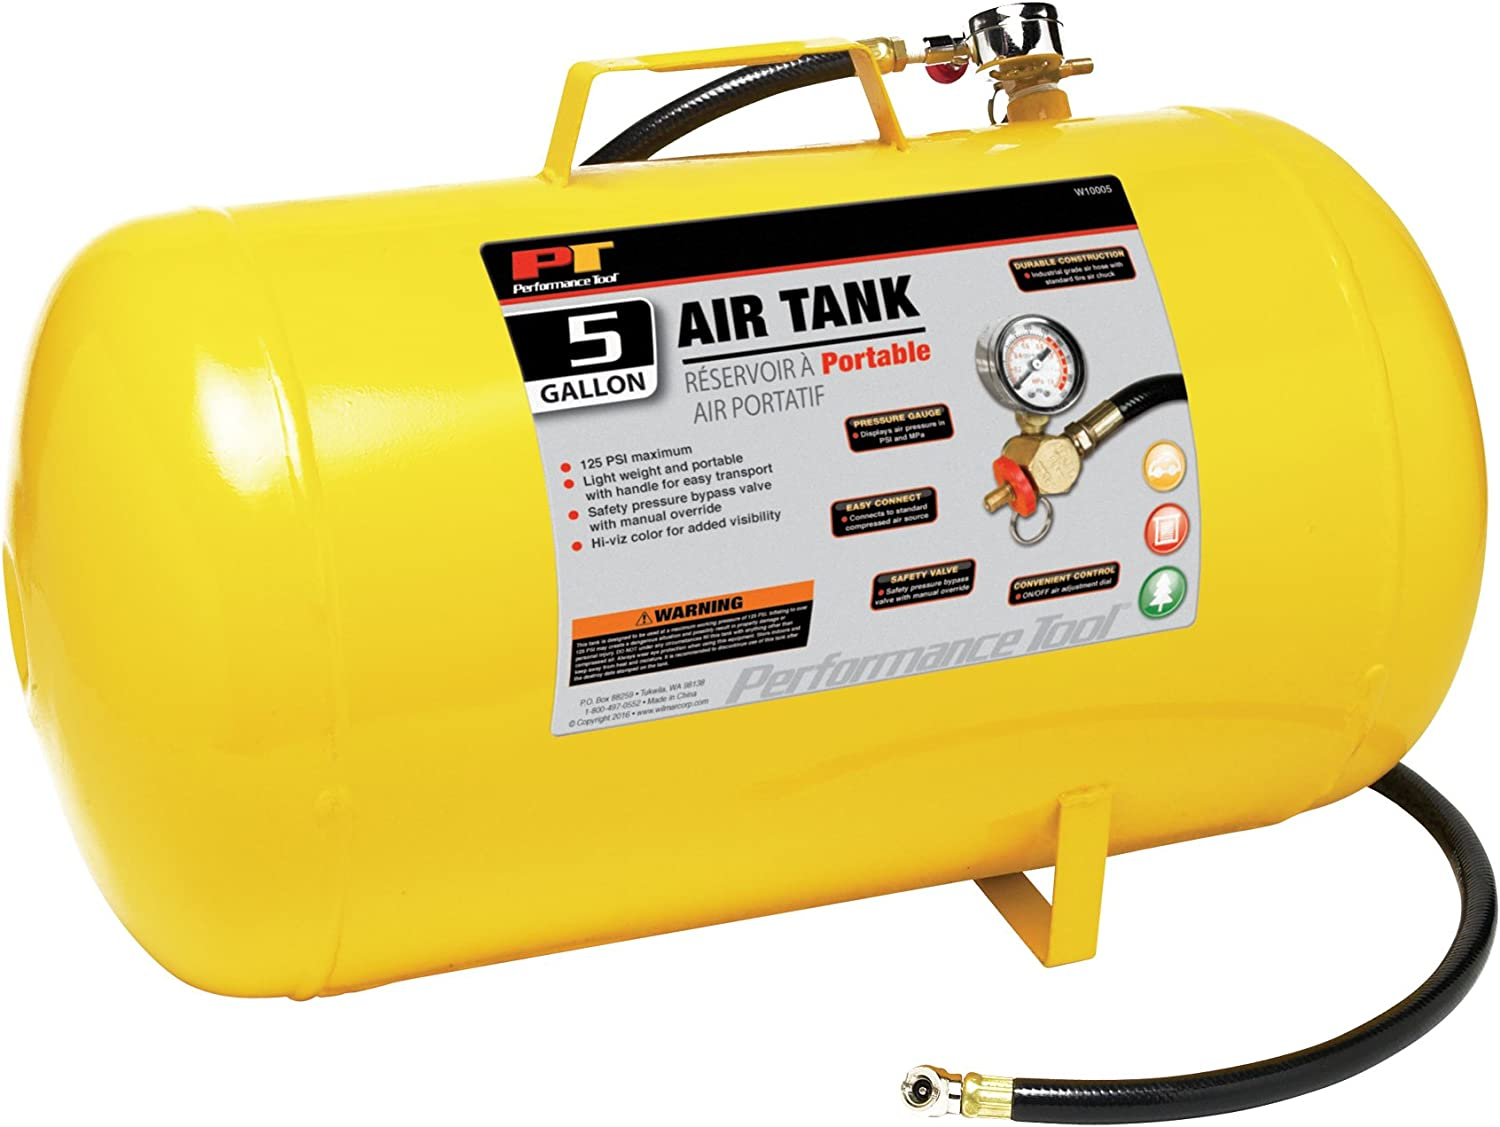 Performance Tool Portable Air Tank